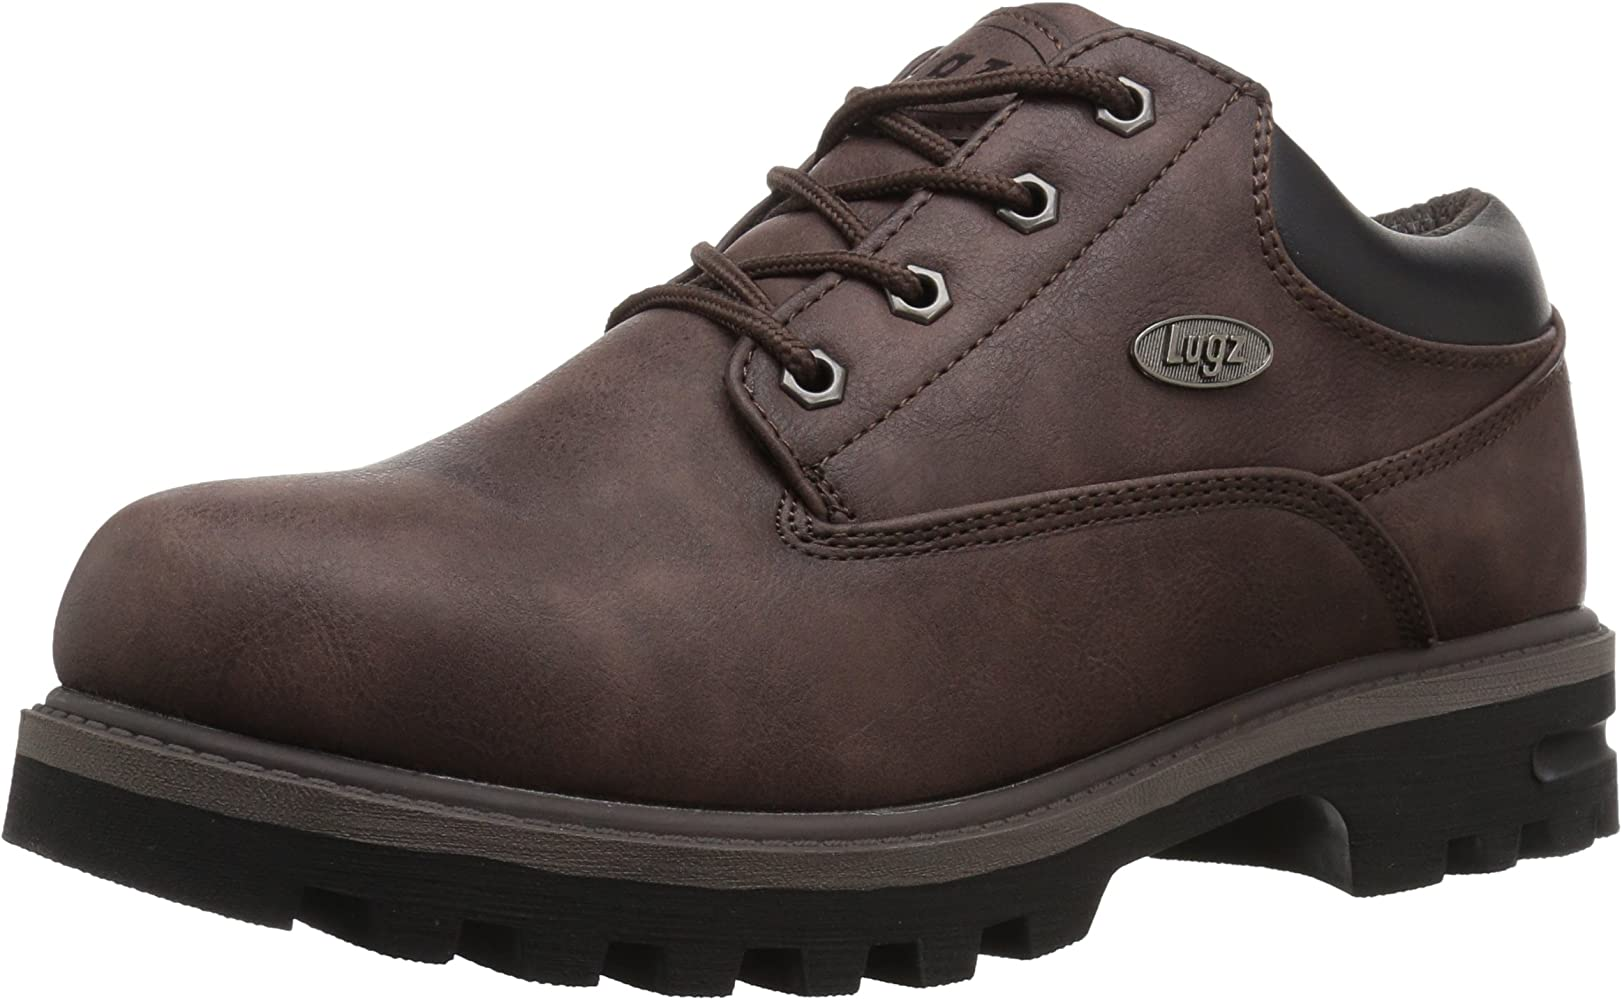 d75943080fc Lugz Men's Empire Lo Water Resistant Fashion Boot, Coffee/Black, 7 D ...